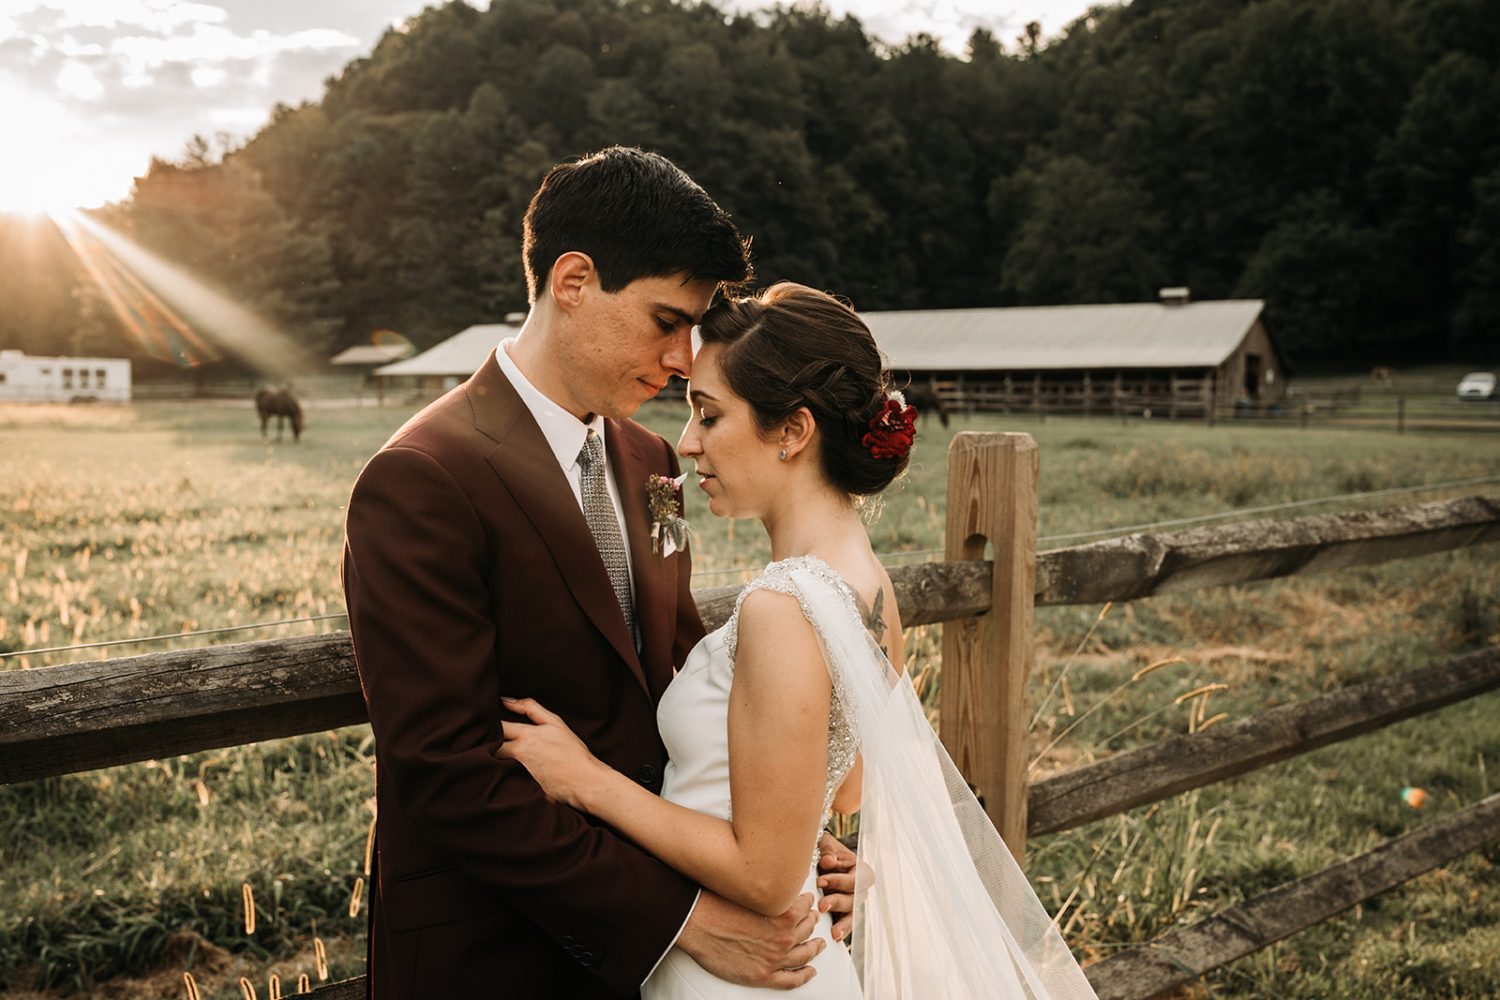 Couple-Rustic-Wedding-Portraits